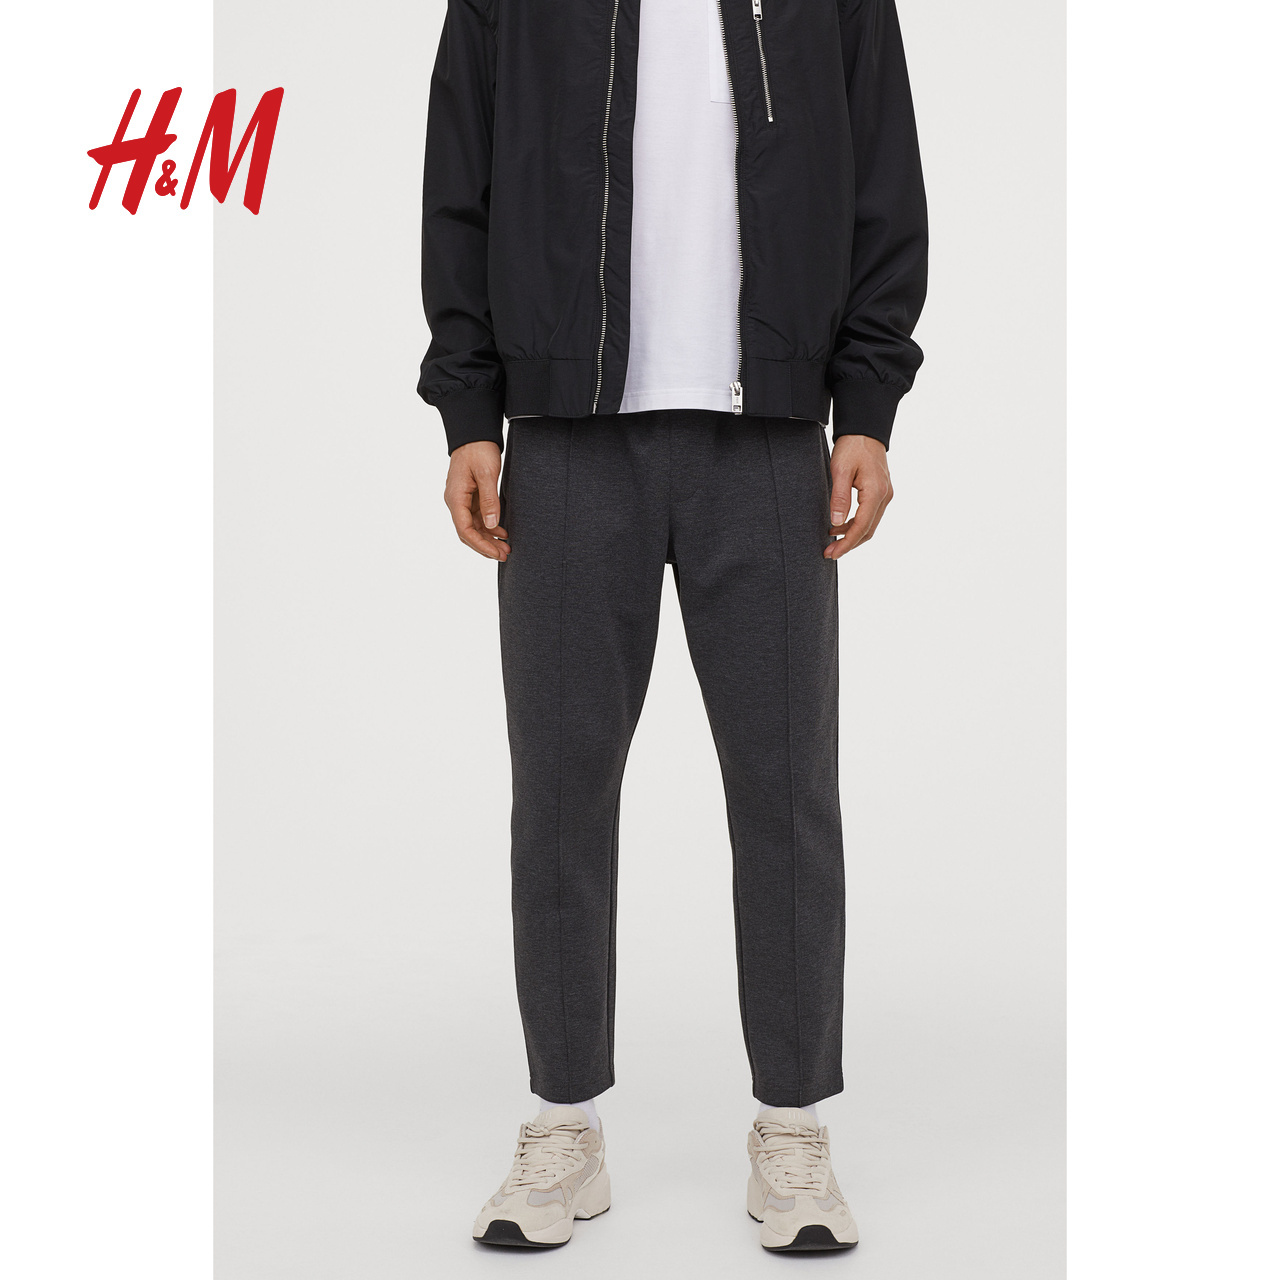 HM men's casual pants fashion men's 2020 new men's spring trend 9-point pants Wei pants 0852379